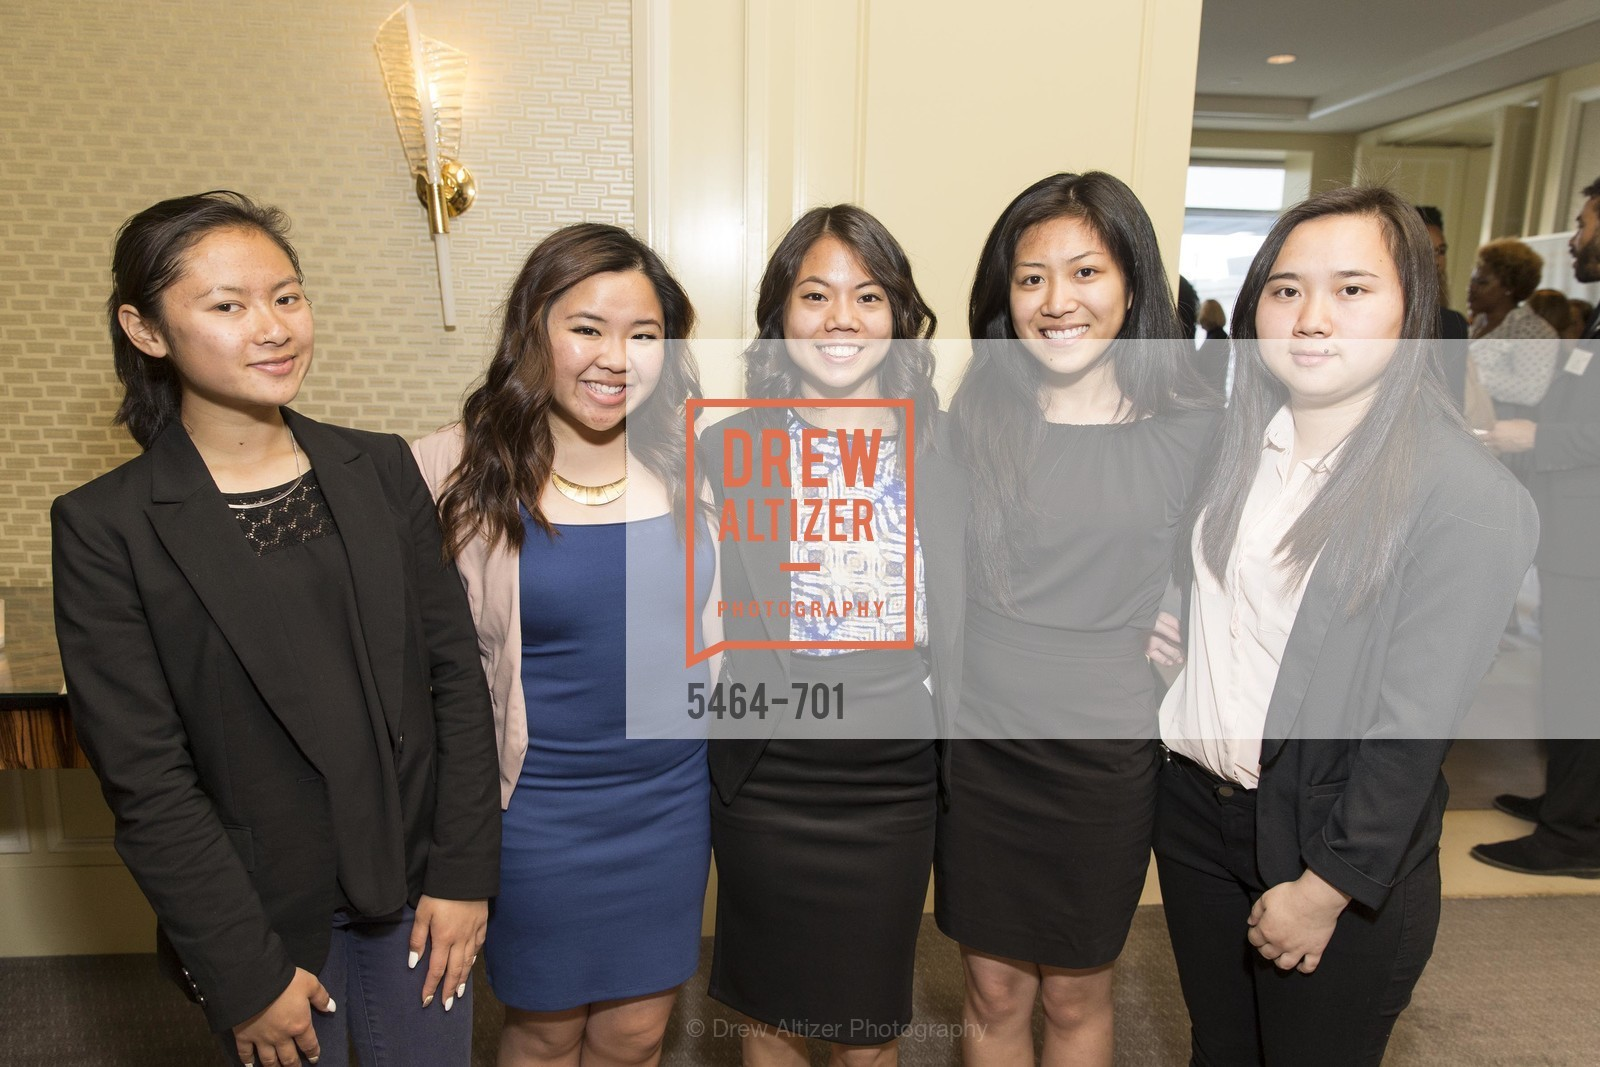 Sherry Liang, Wendy La, Ky Jia Pham, Crystal Huang, Hong Hong Wu, SUMMER SEARCH San Francisco 25th Anniversary, US, May 6th, 2015,Drew Altizer, Drew Altizer Photography, full-service agency, private events, San Francisco photographer, photographer california